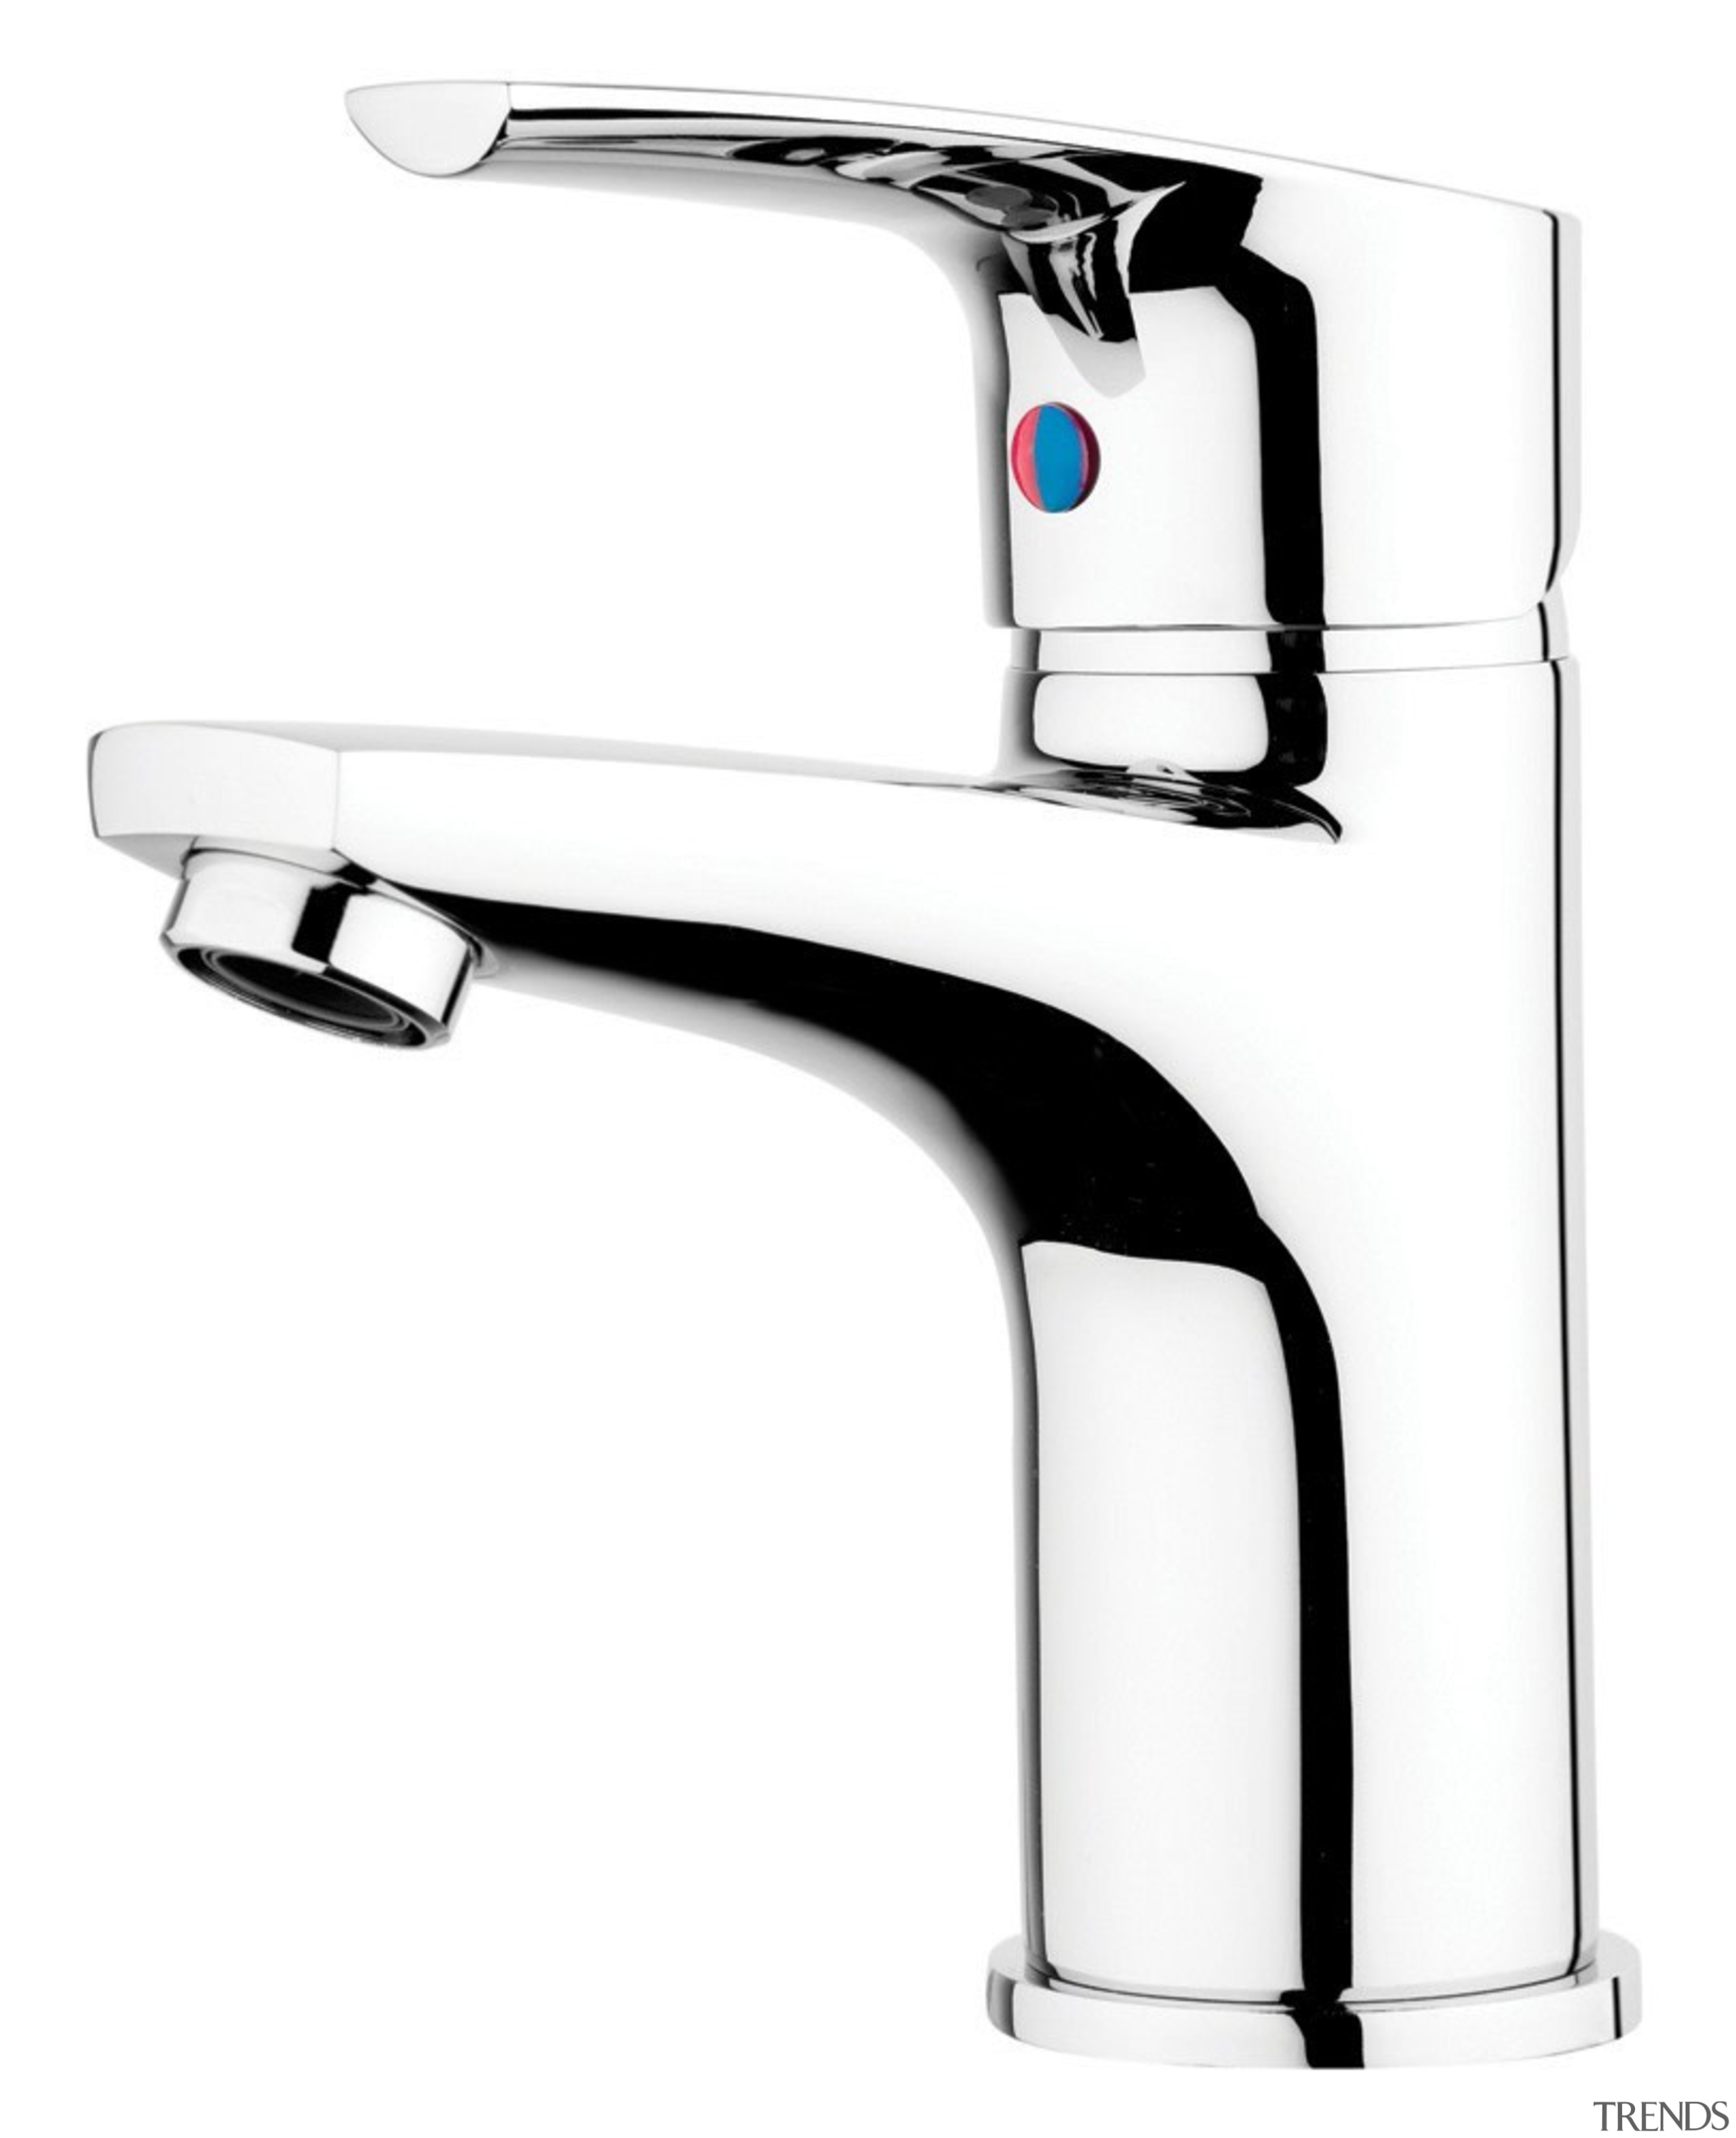 For more information, please visit www.foreno.co.nz or hardware, plumbing fixture, product, product design, tap, white